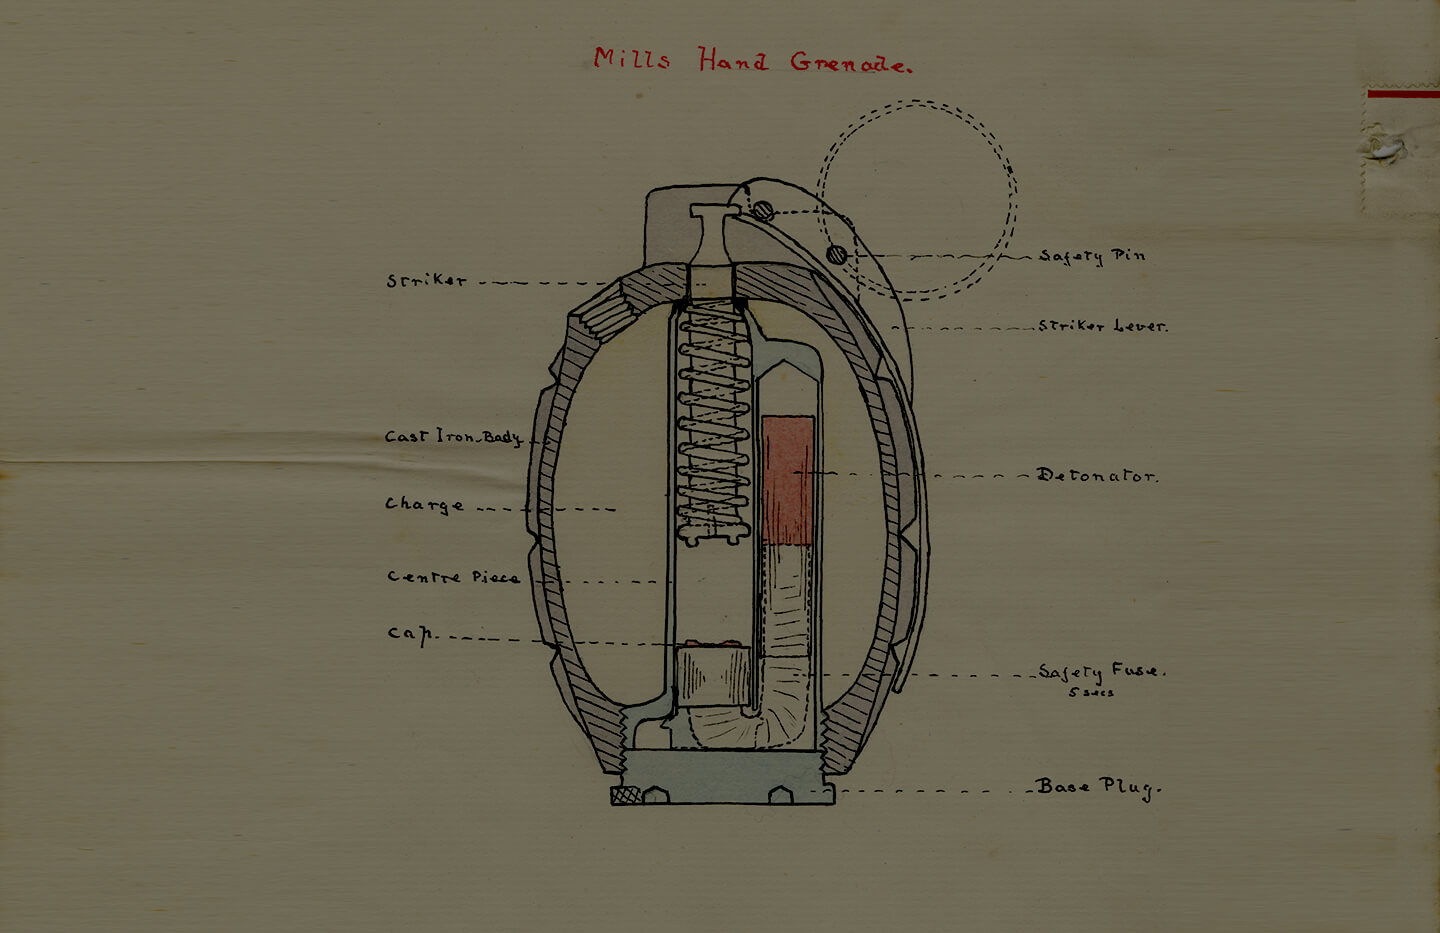 Diagram of a No 5 Mills hand grenade